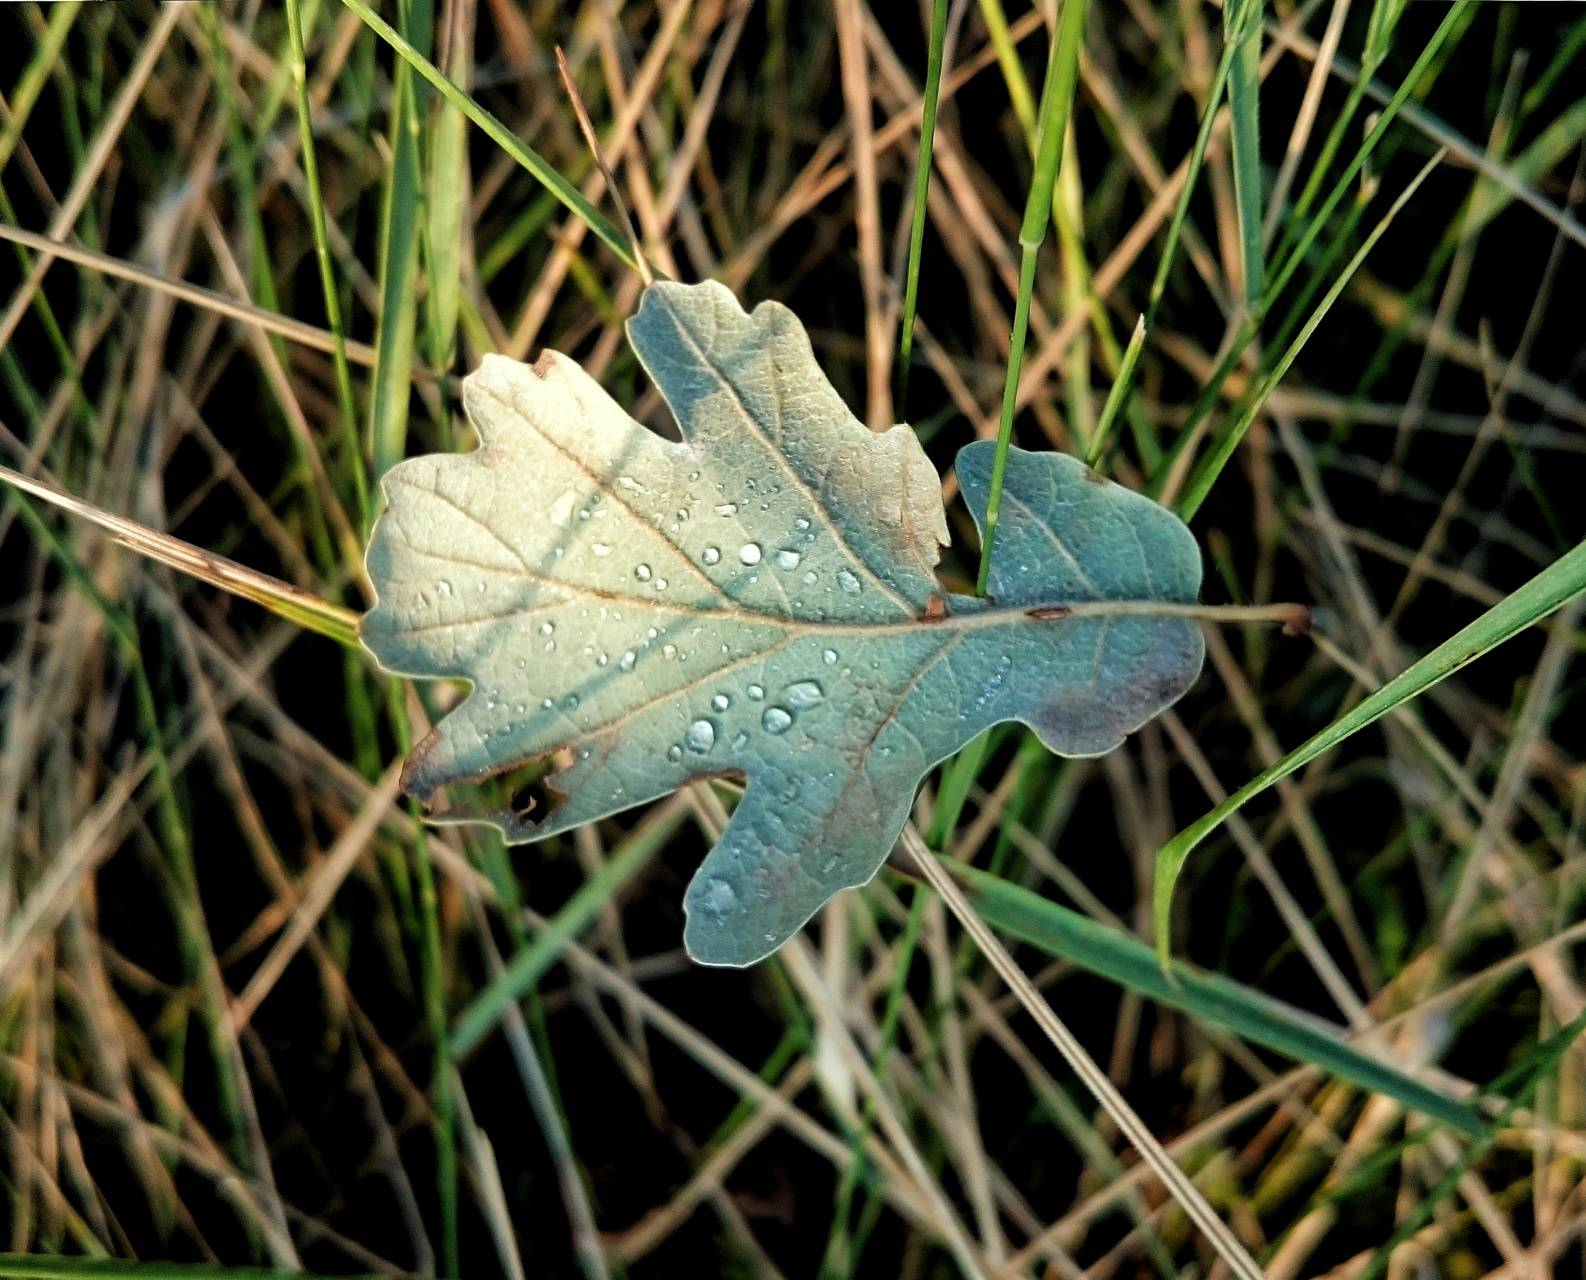 Leaf on grass